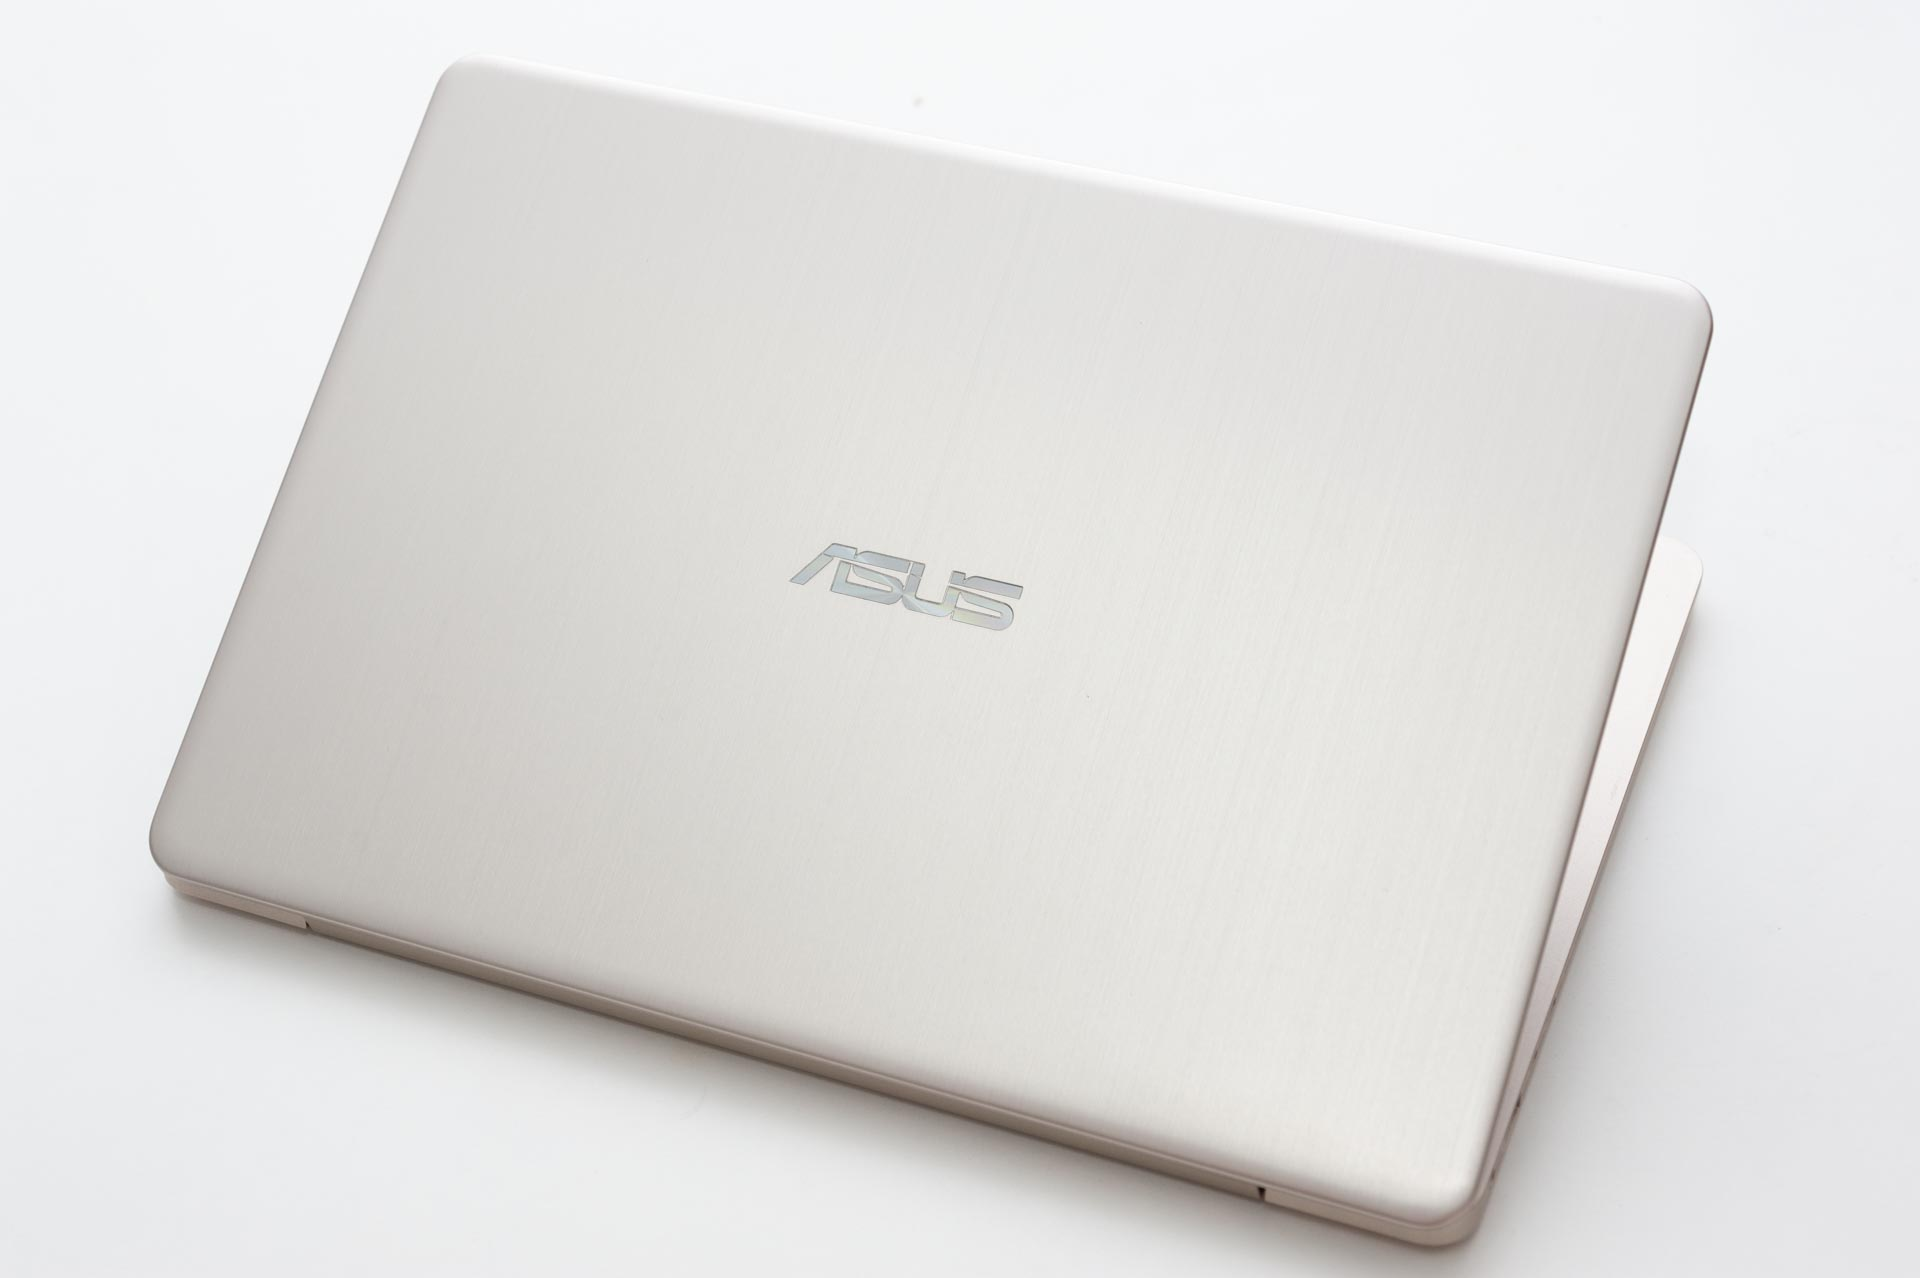 Review - ASUS VivoBook S14 (S406U) Notebook (i3-7100U, 4GB